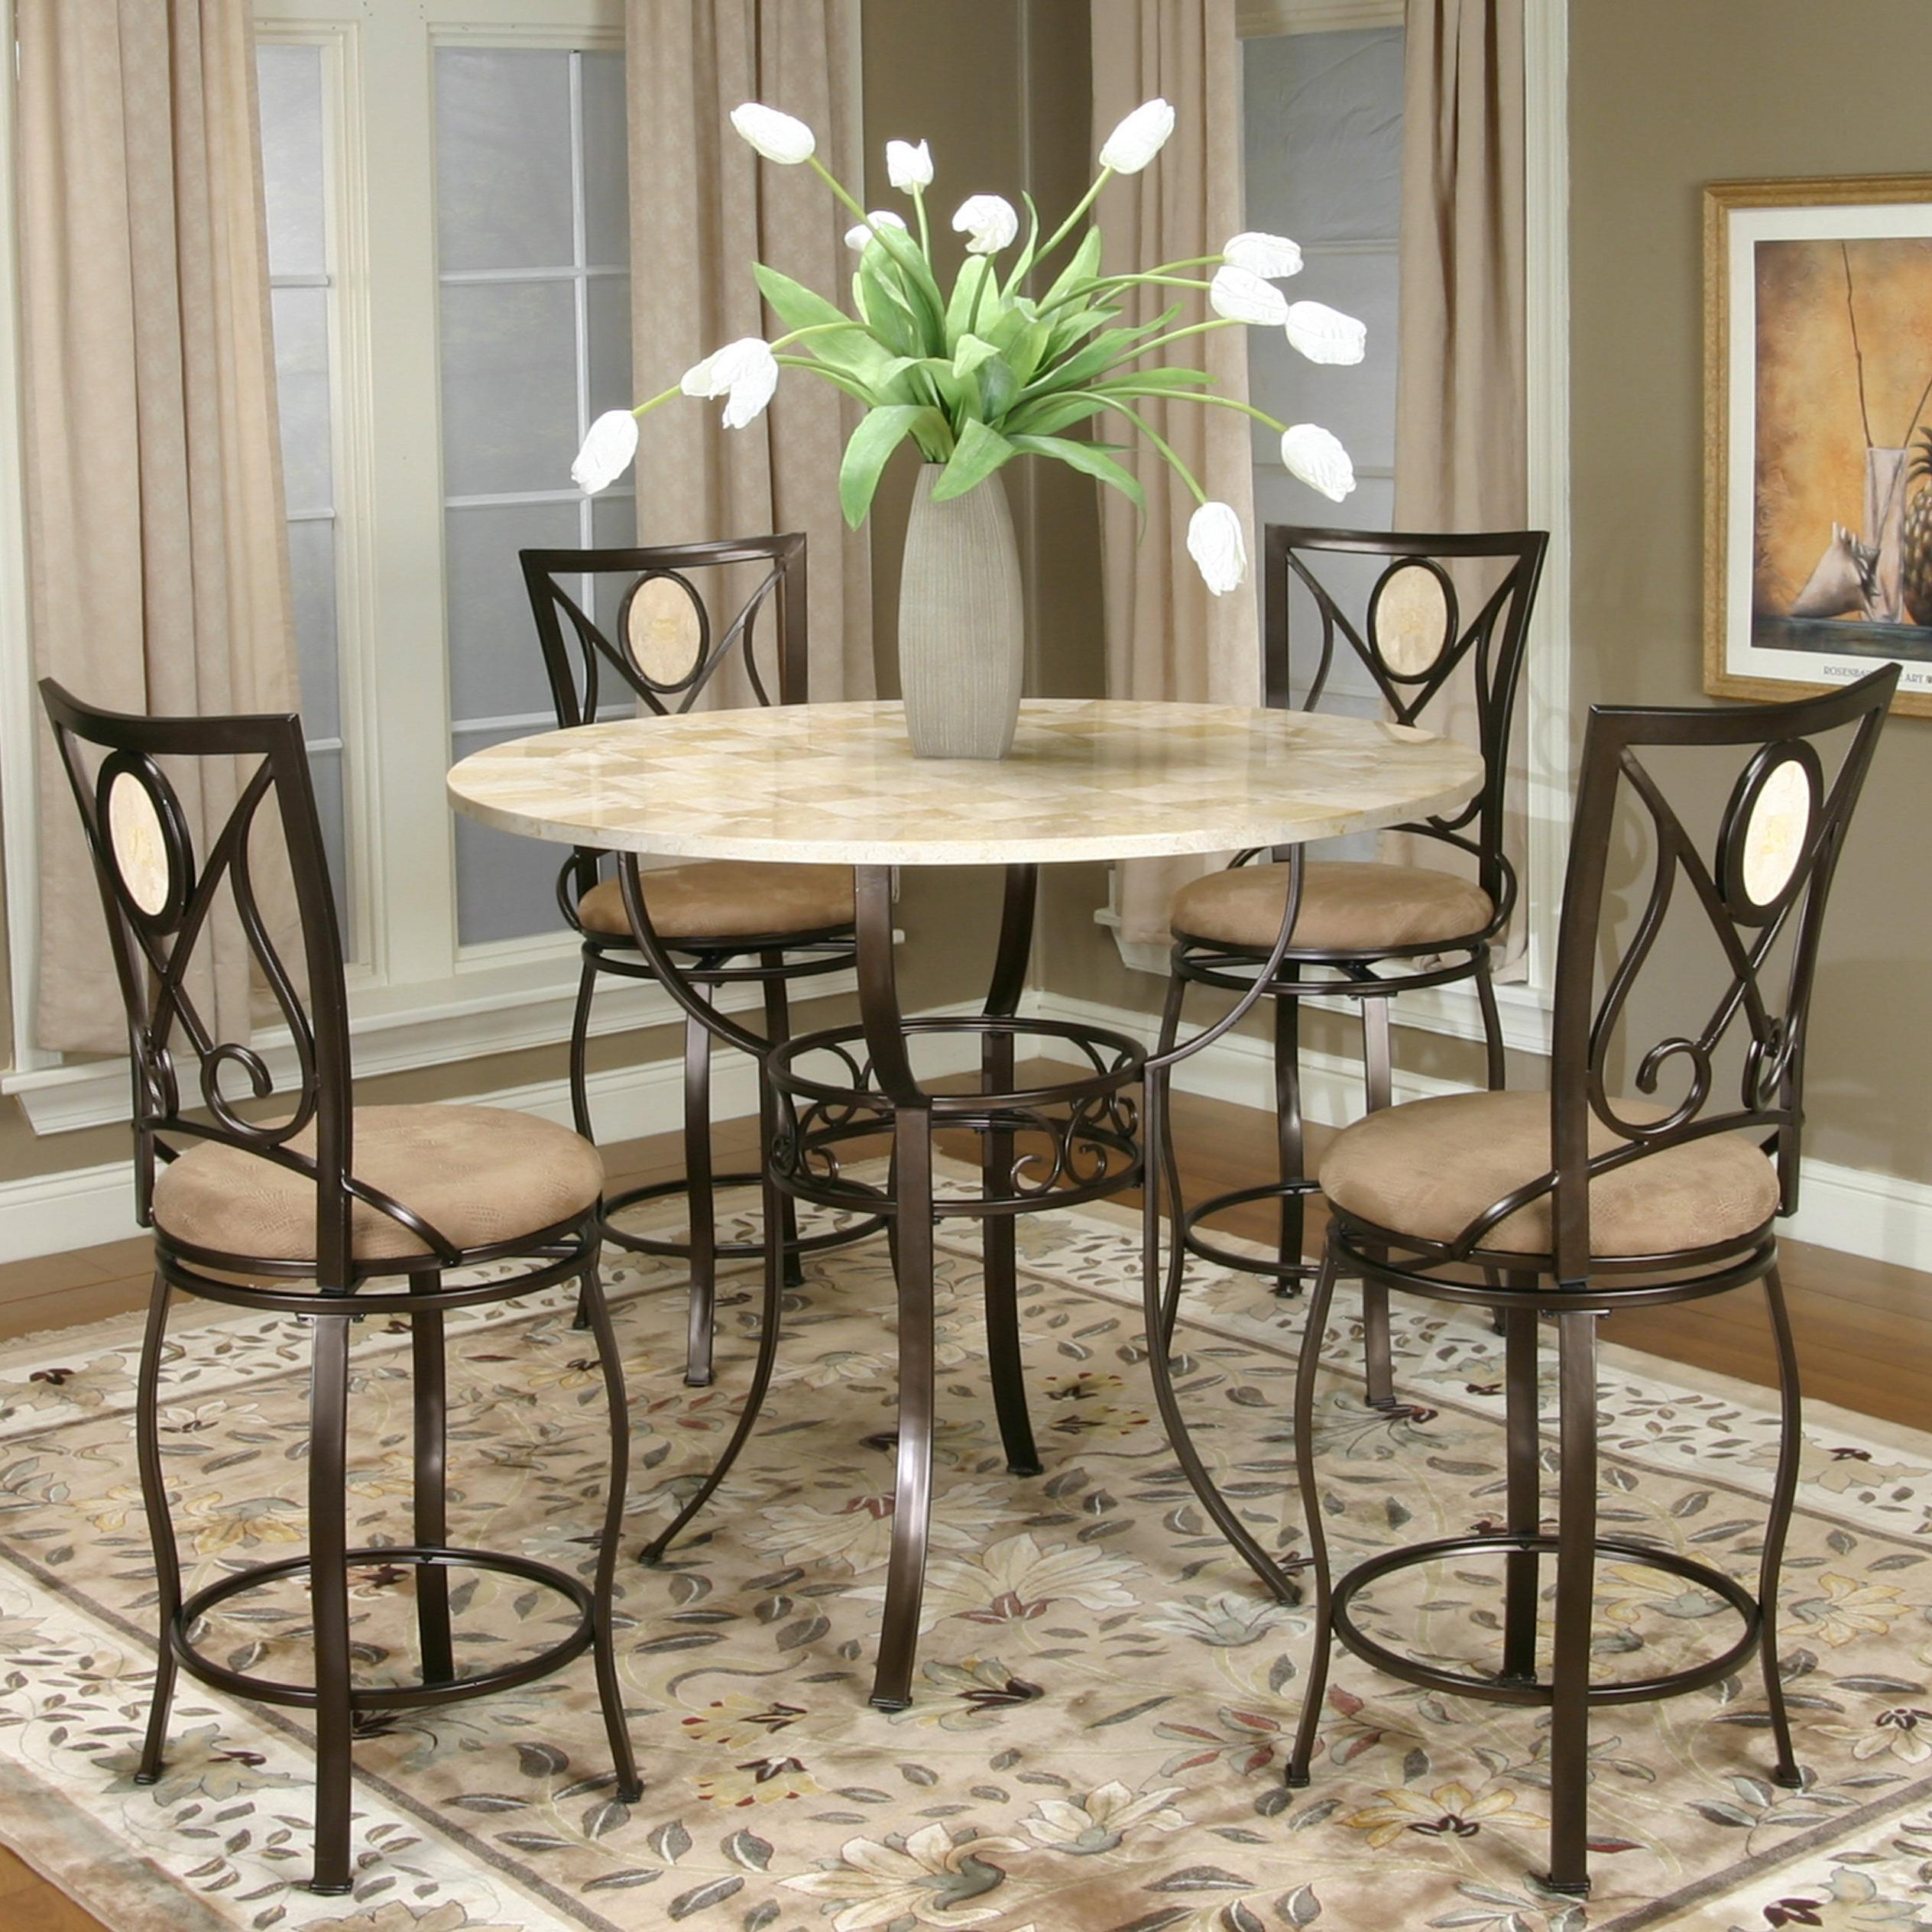 Counter height round table and chairs - Bronze Counter Height Pub Table